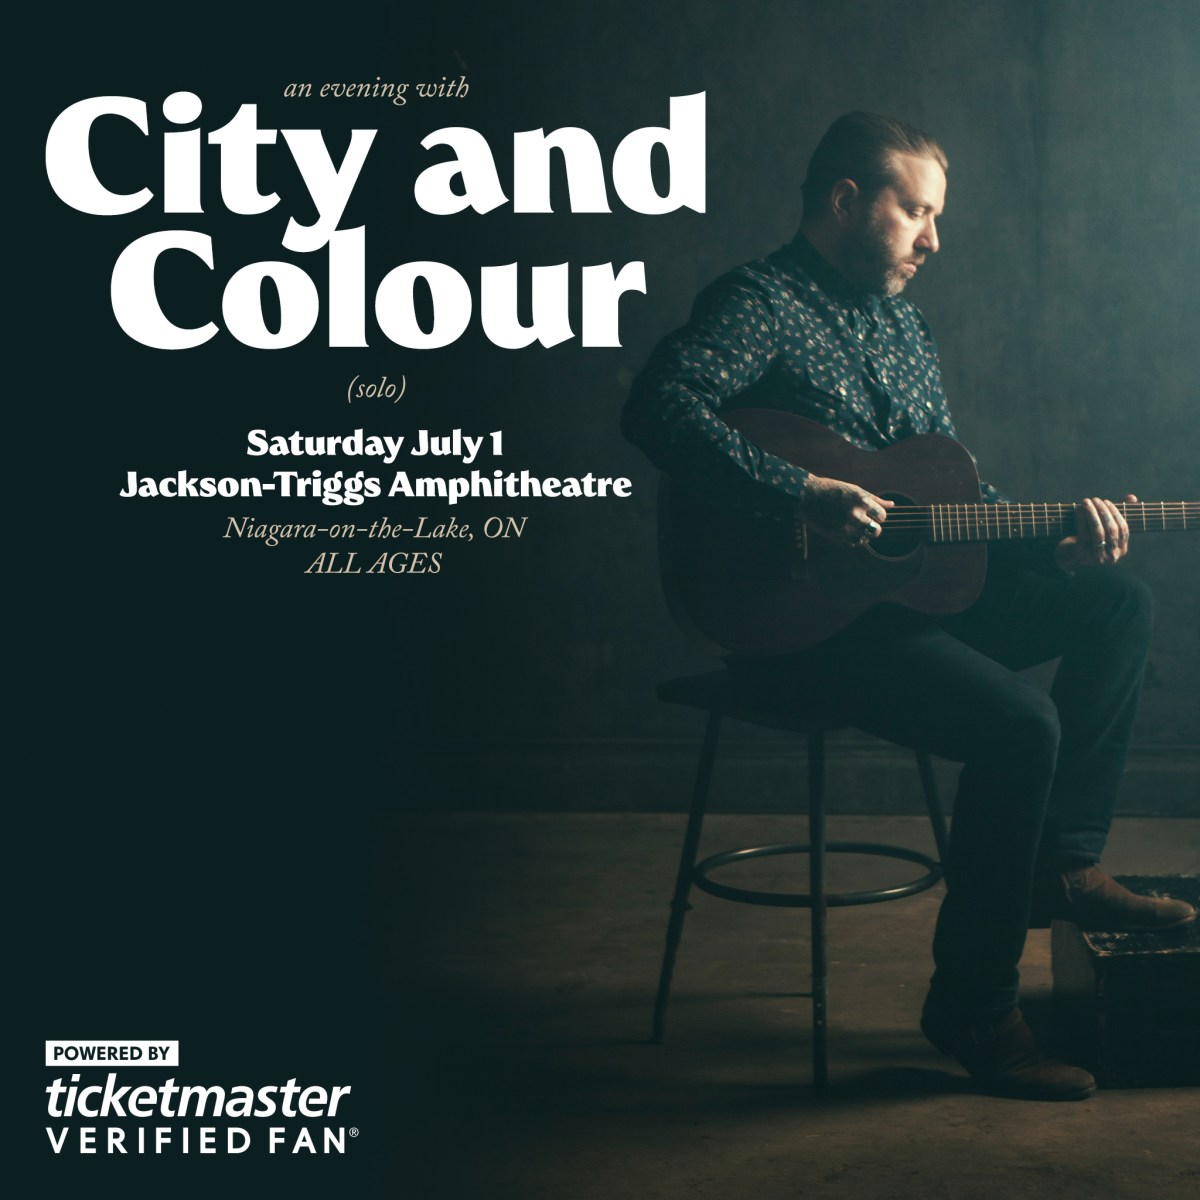 City And Colour Announce Exclusive Ontario Solo Performance For Canada Day, July 1, 2017